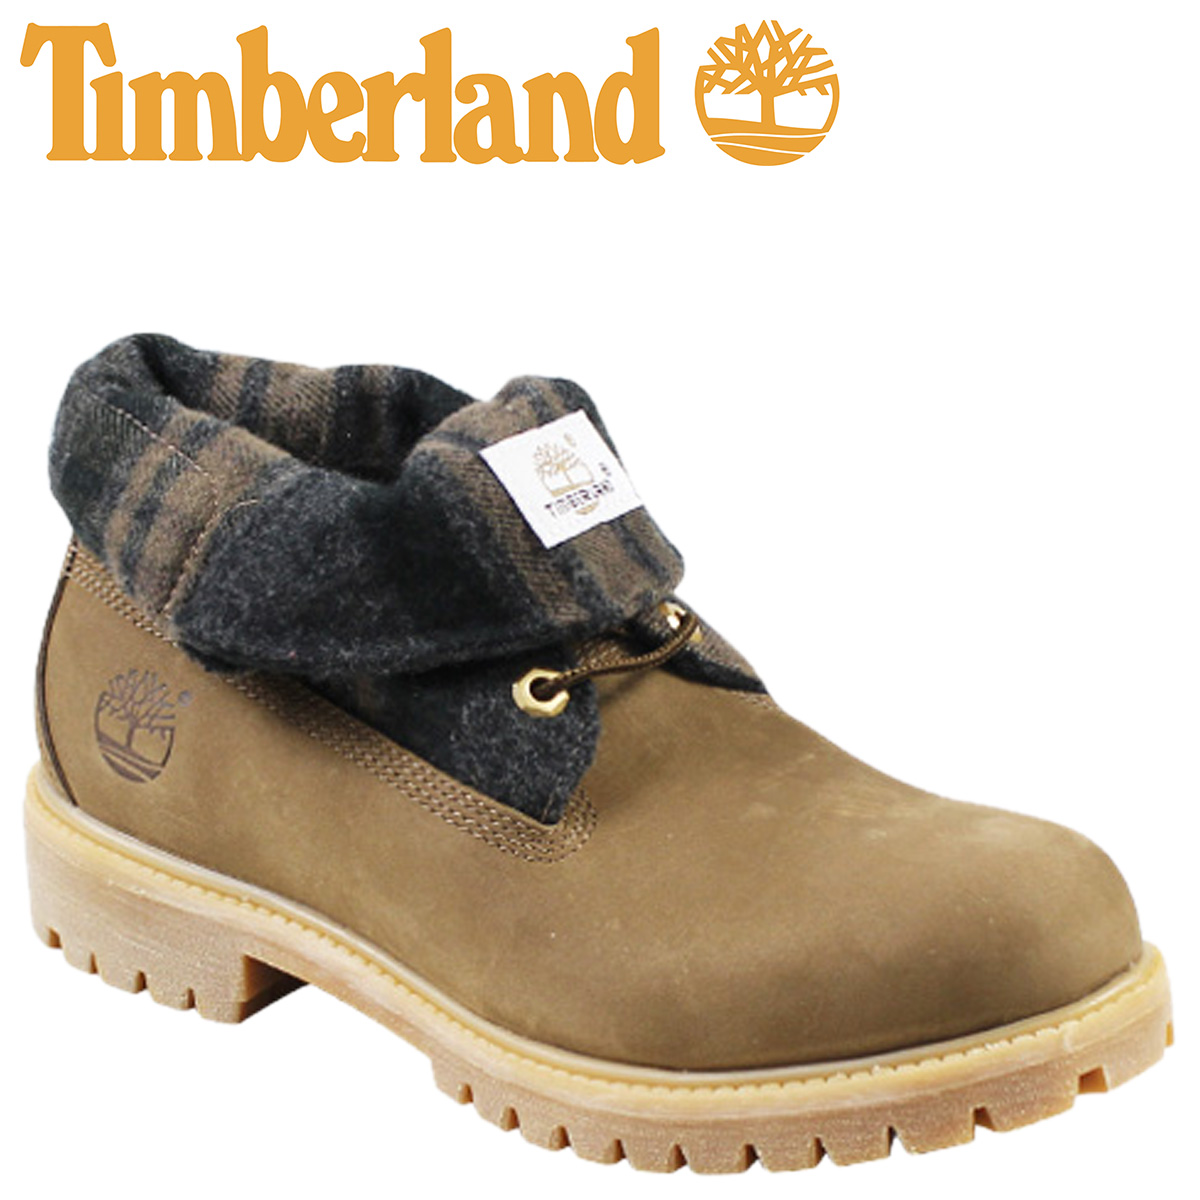 336558a39b52 ALLSPORTS   SOLD OUT  Timberland Timberland icons roll top boots ...